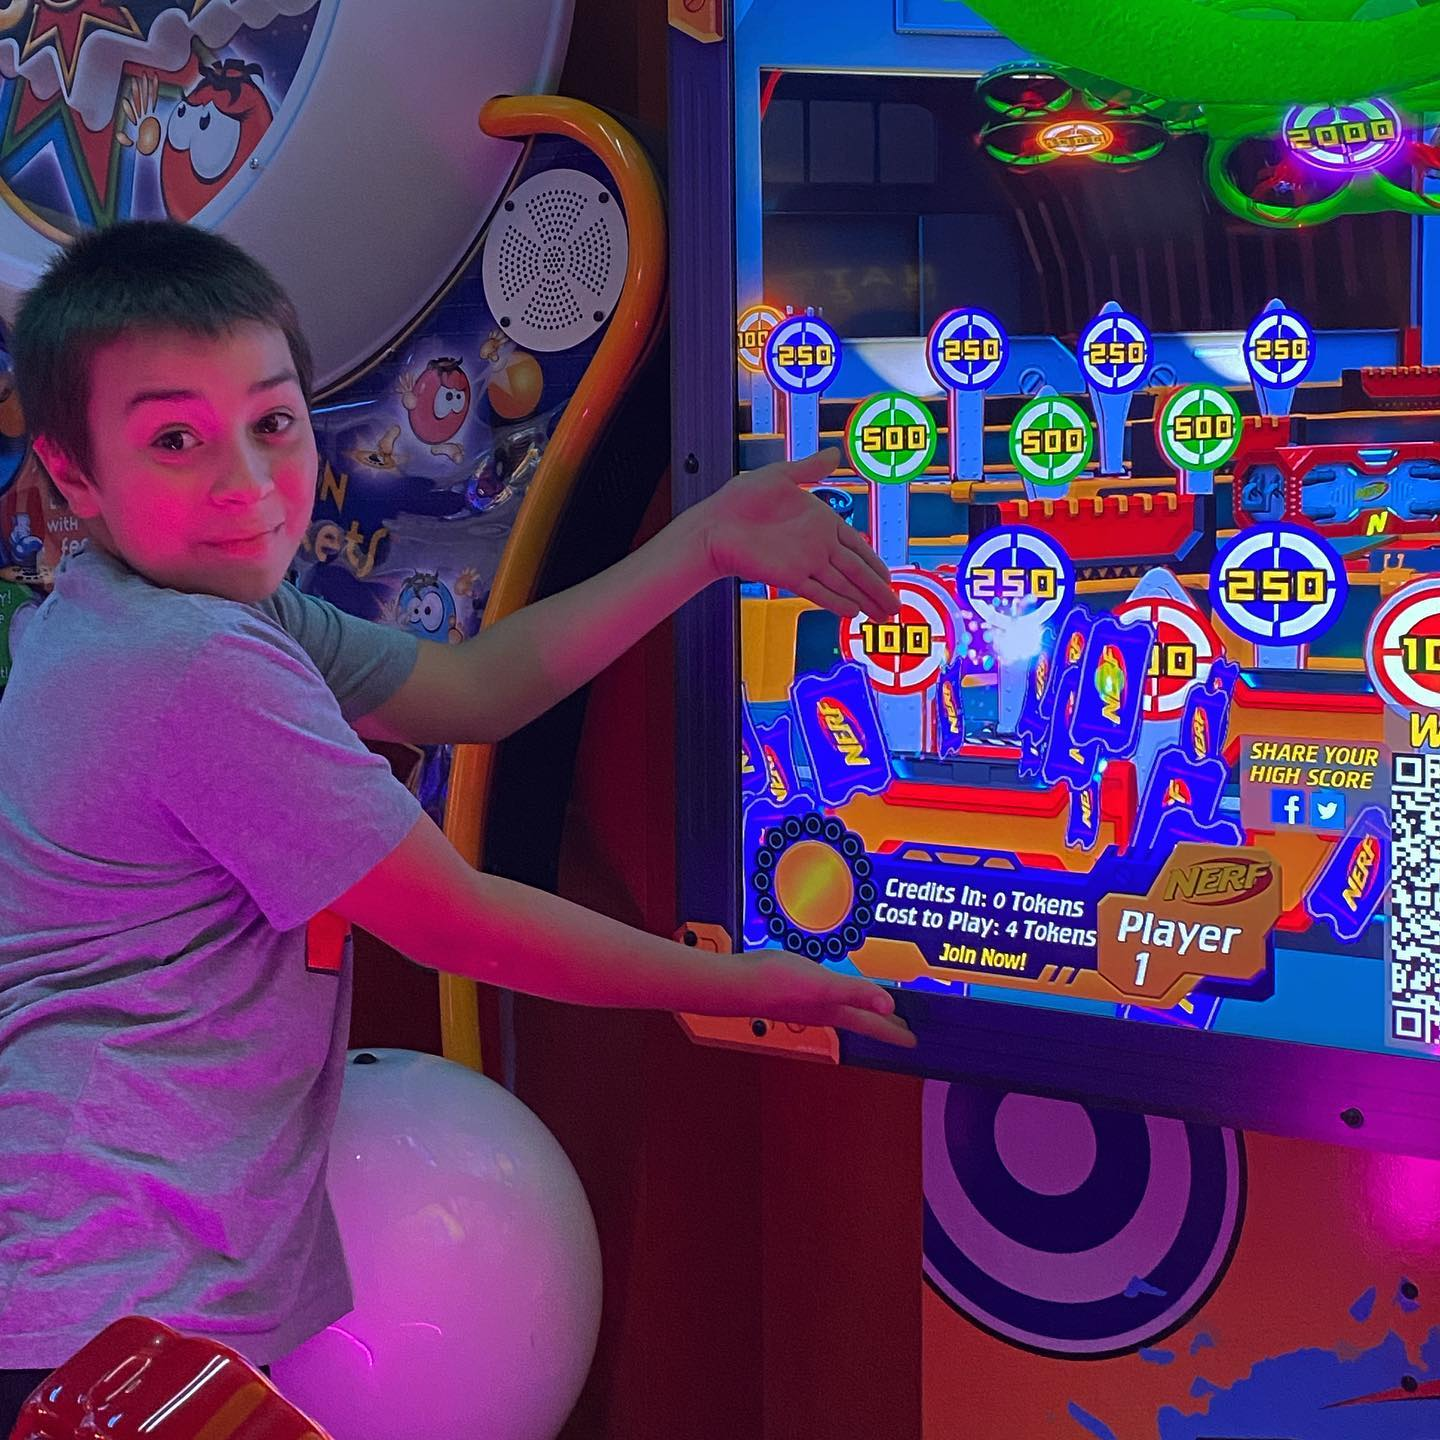 Play the arcade games down at the Wharf- this is always a good family night fun activity - especially when they win big -have fun! #familyfunnight #funatthewharf #arcadegames